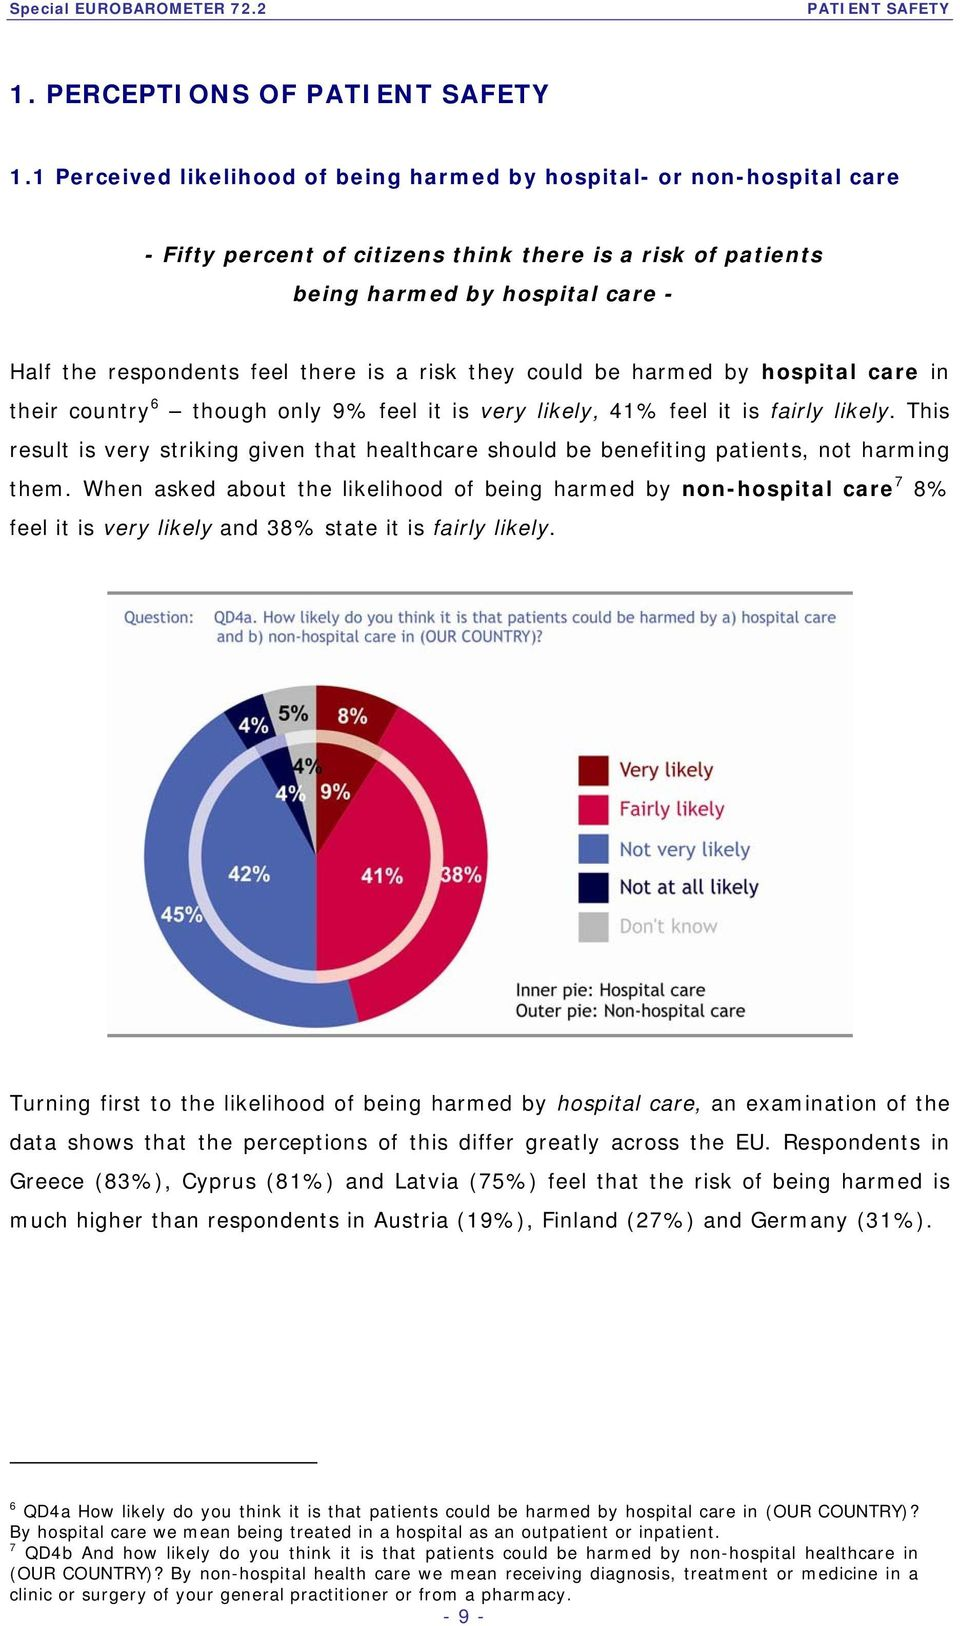 is a risk they could be harmed by hospital care in their country 6 though only 9% feel it is very likely, 41% feel it is fairly likely.